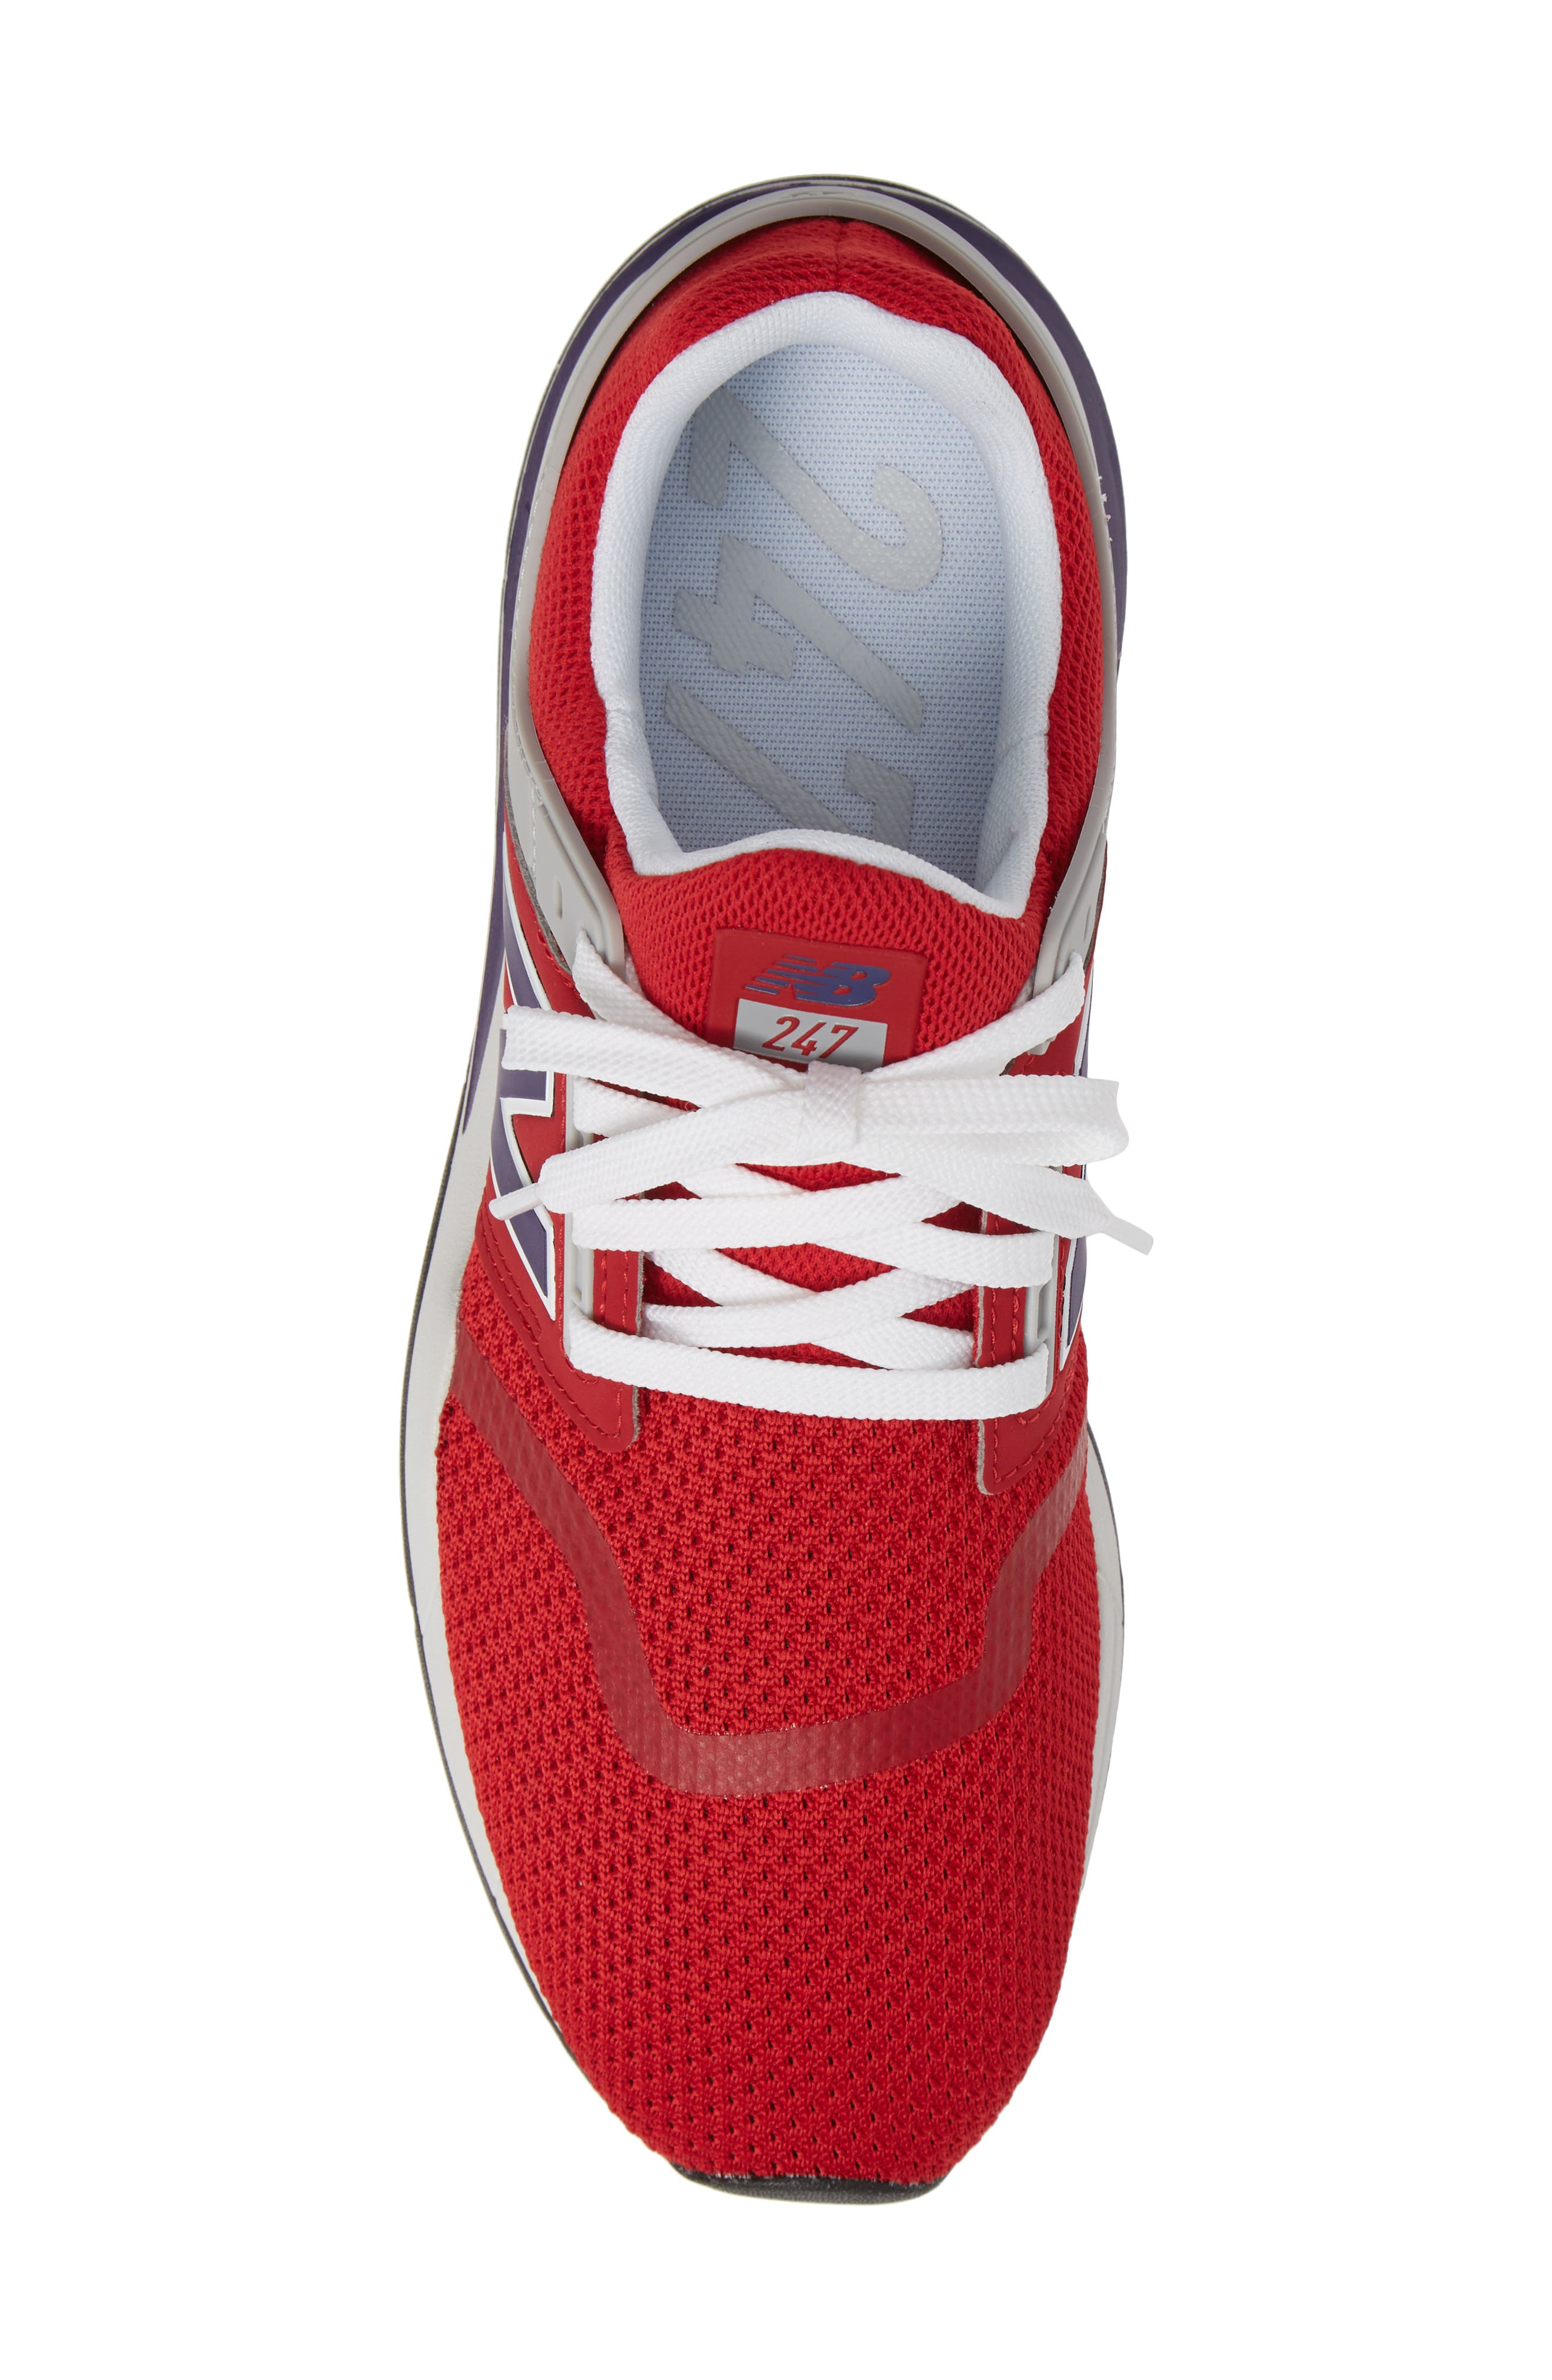 247 Sneaker,                             Alternate thumbnail 5, color,                             TANGO RED SYNTHETIC/ MESH